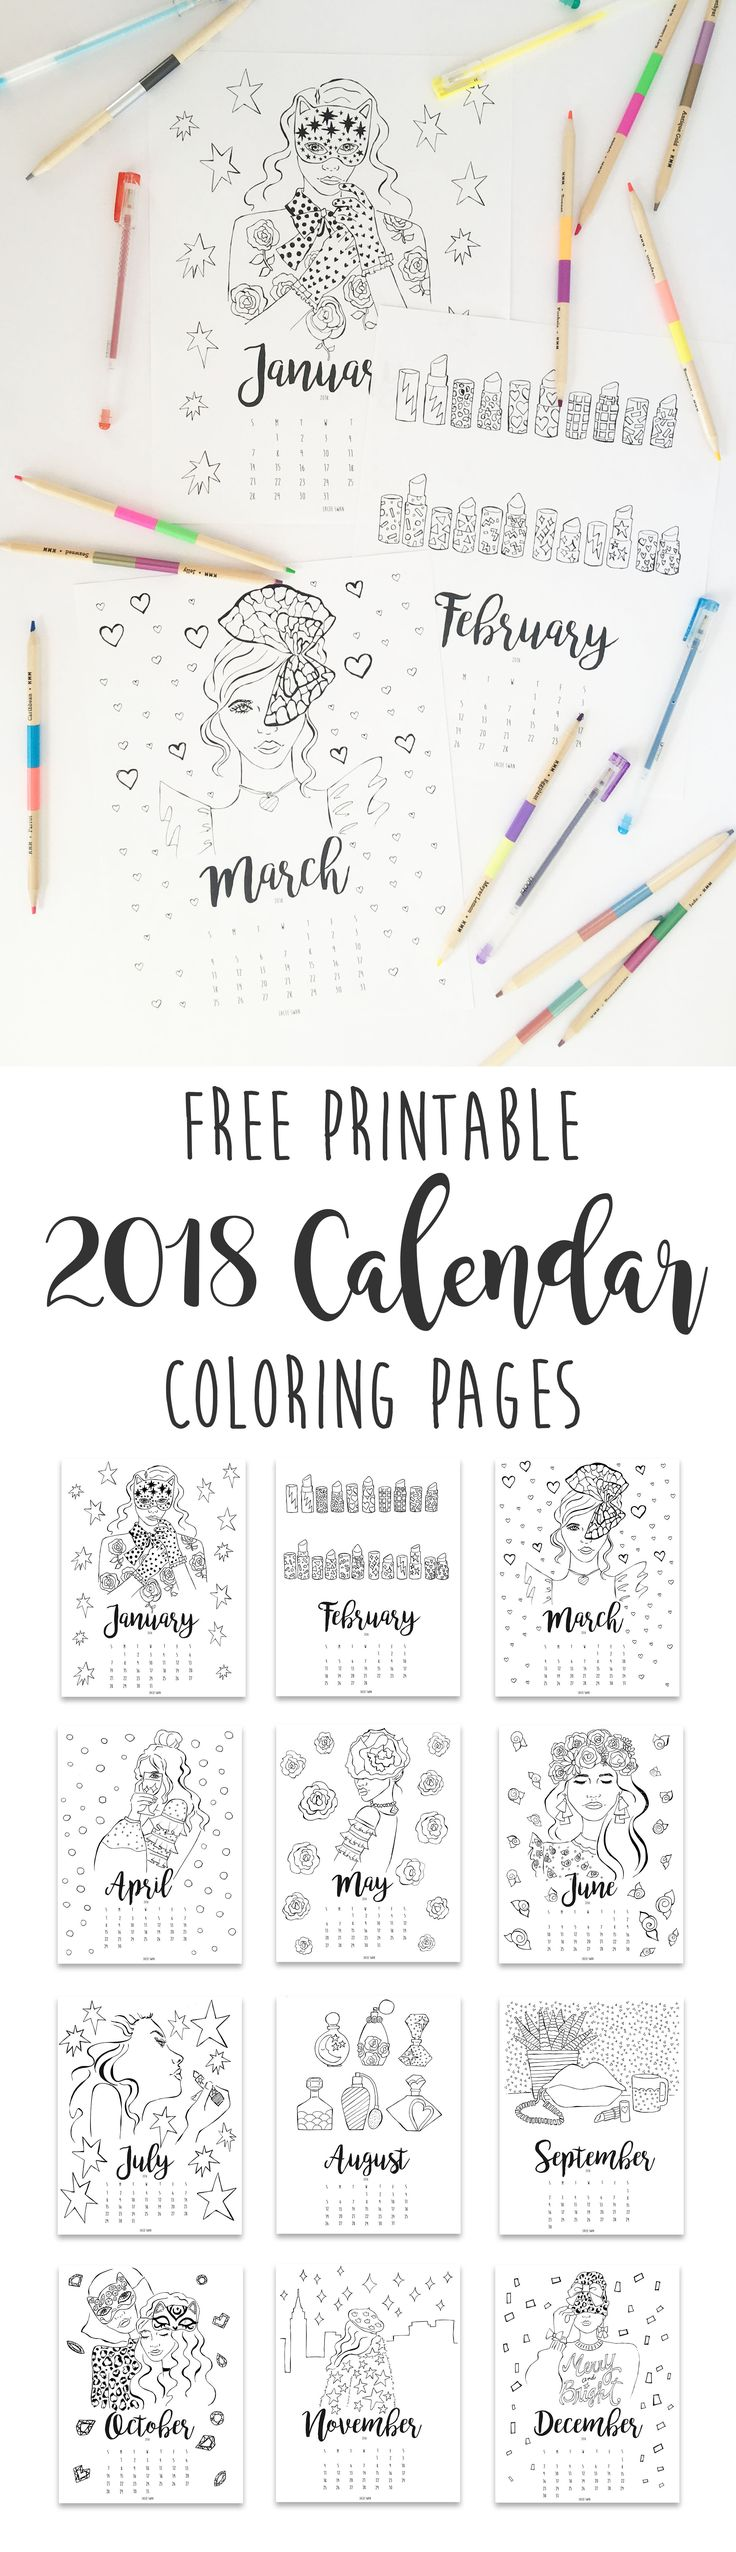 Free Printable 2018 Calendar coloring pages